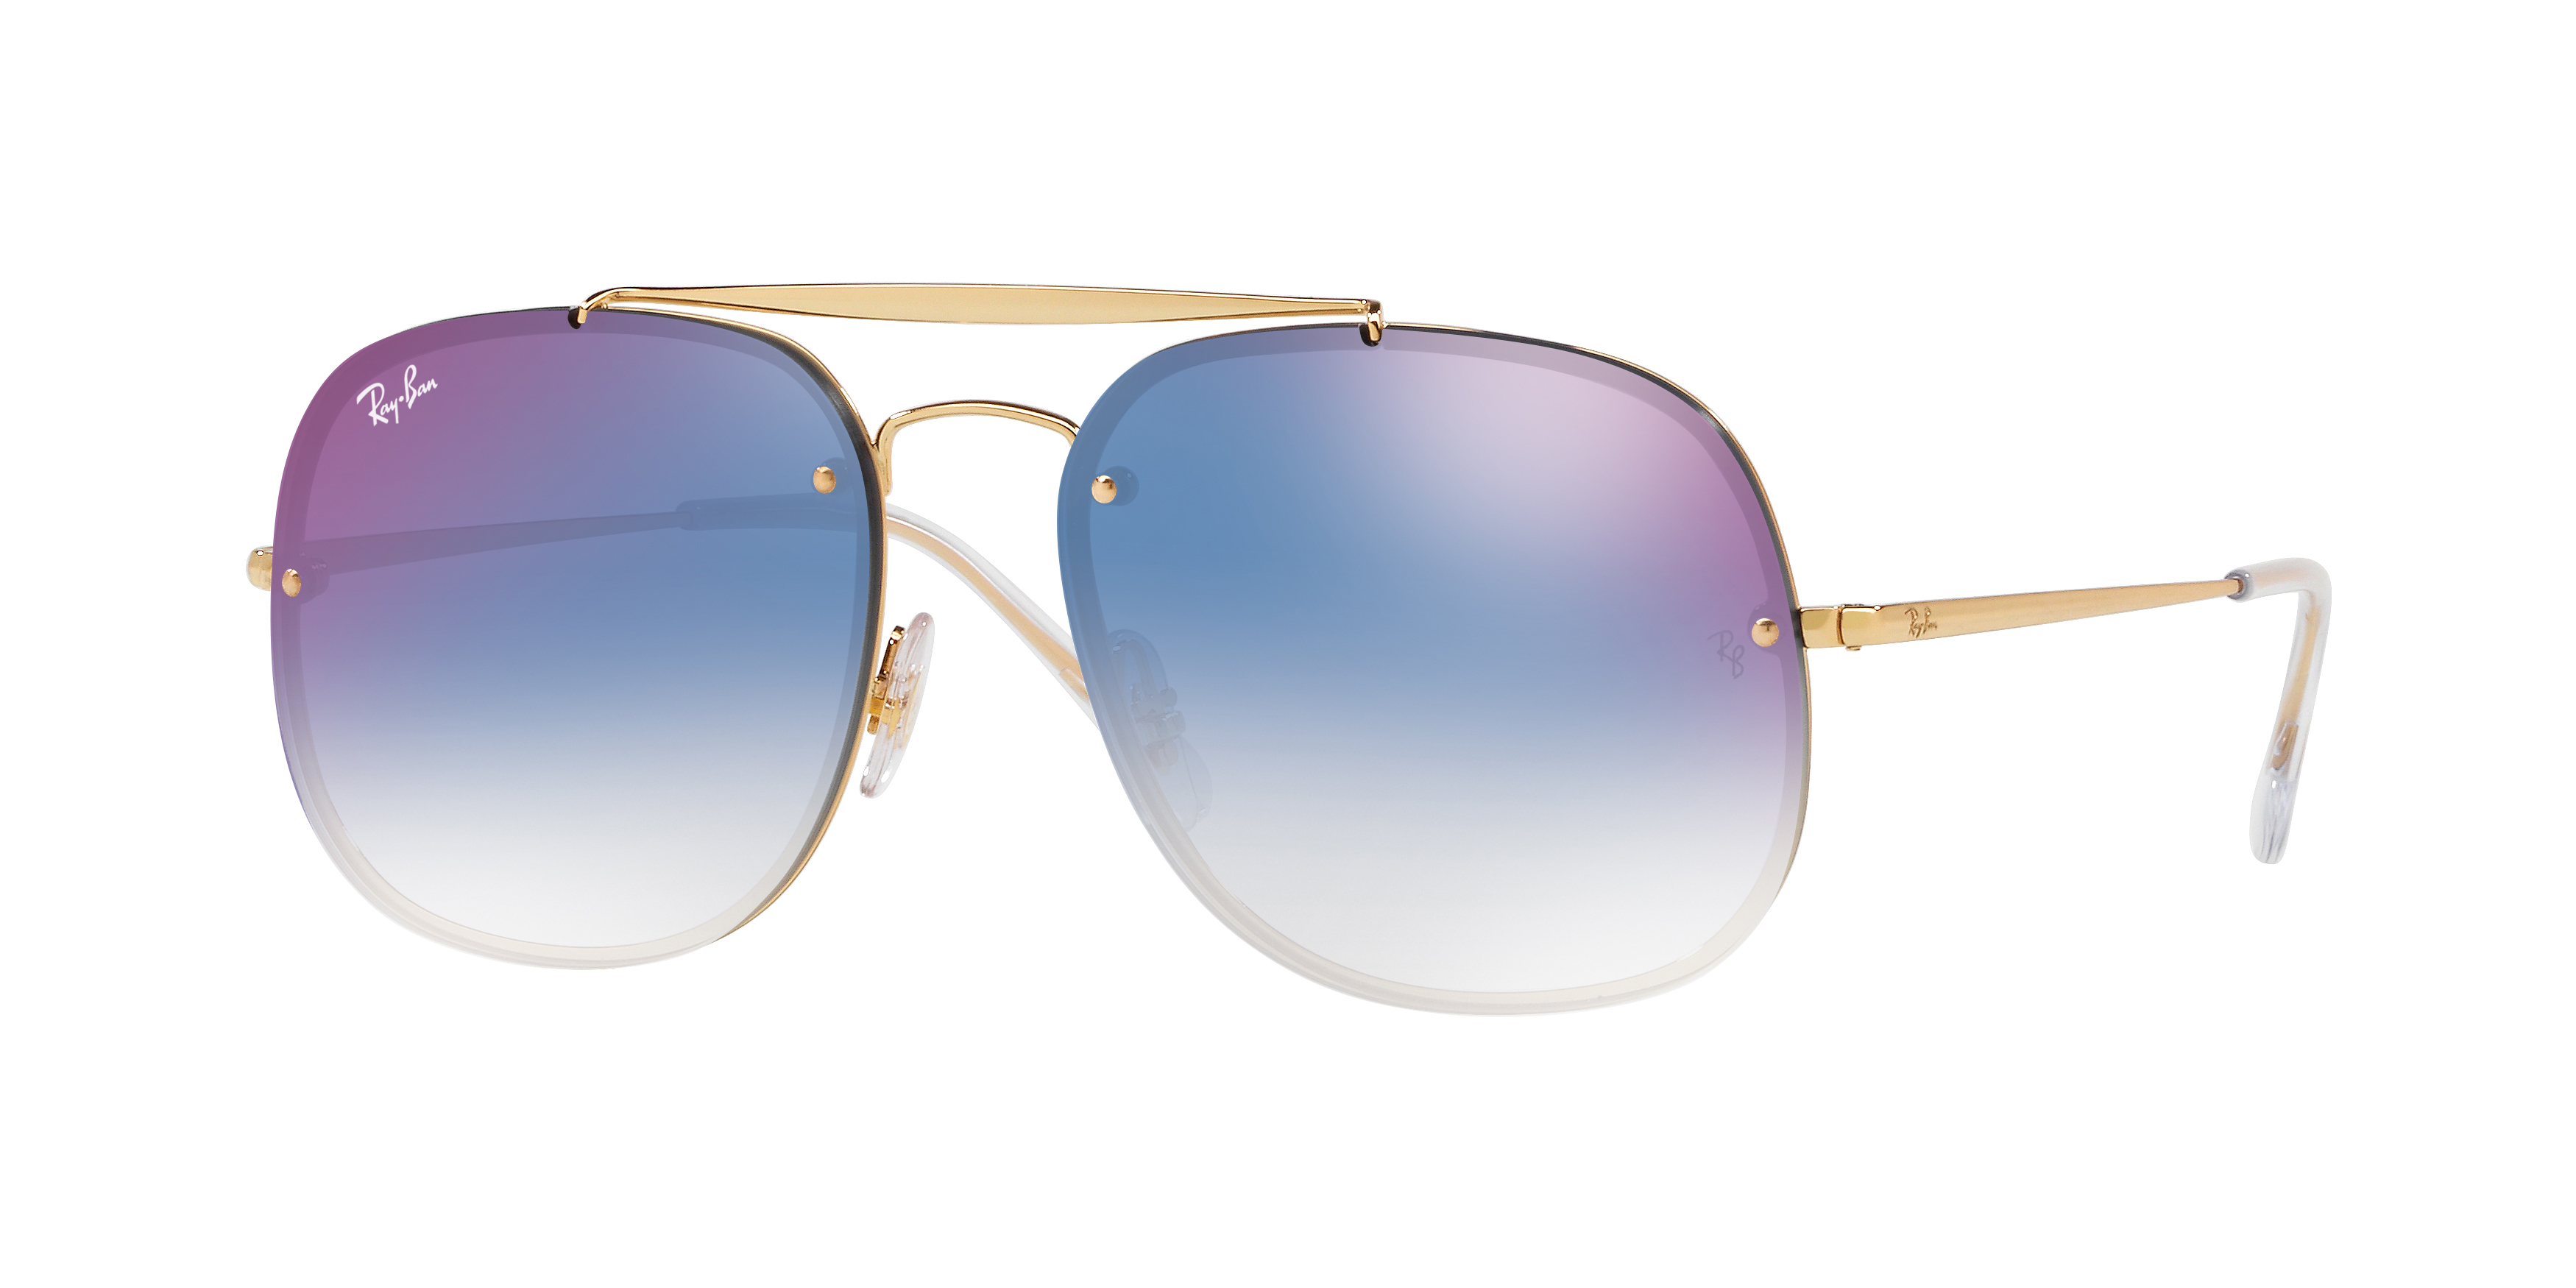 329fcc09c8e7f Ray-Ban s Evolve Collection Is All About Revamping Its Old Styles